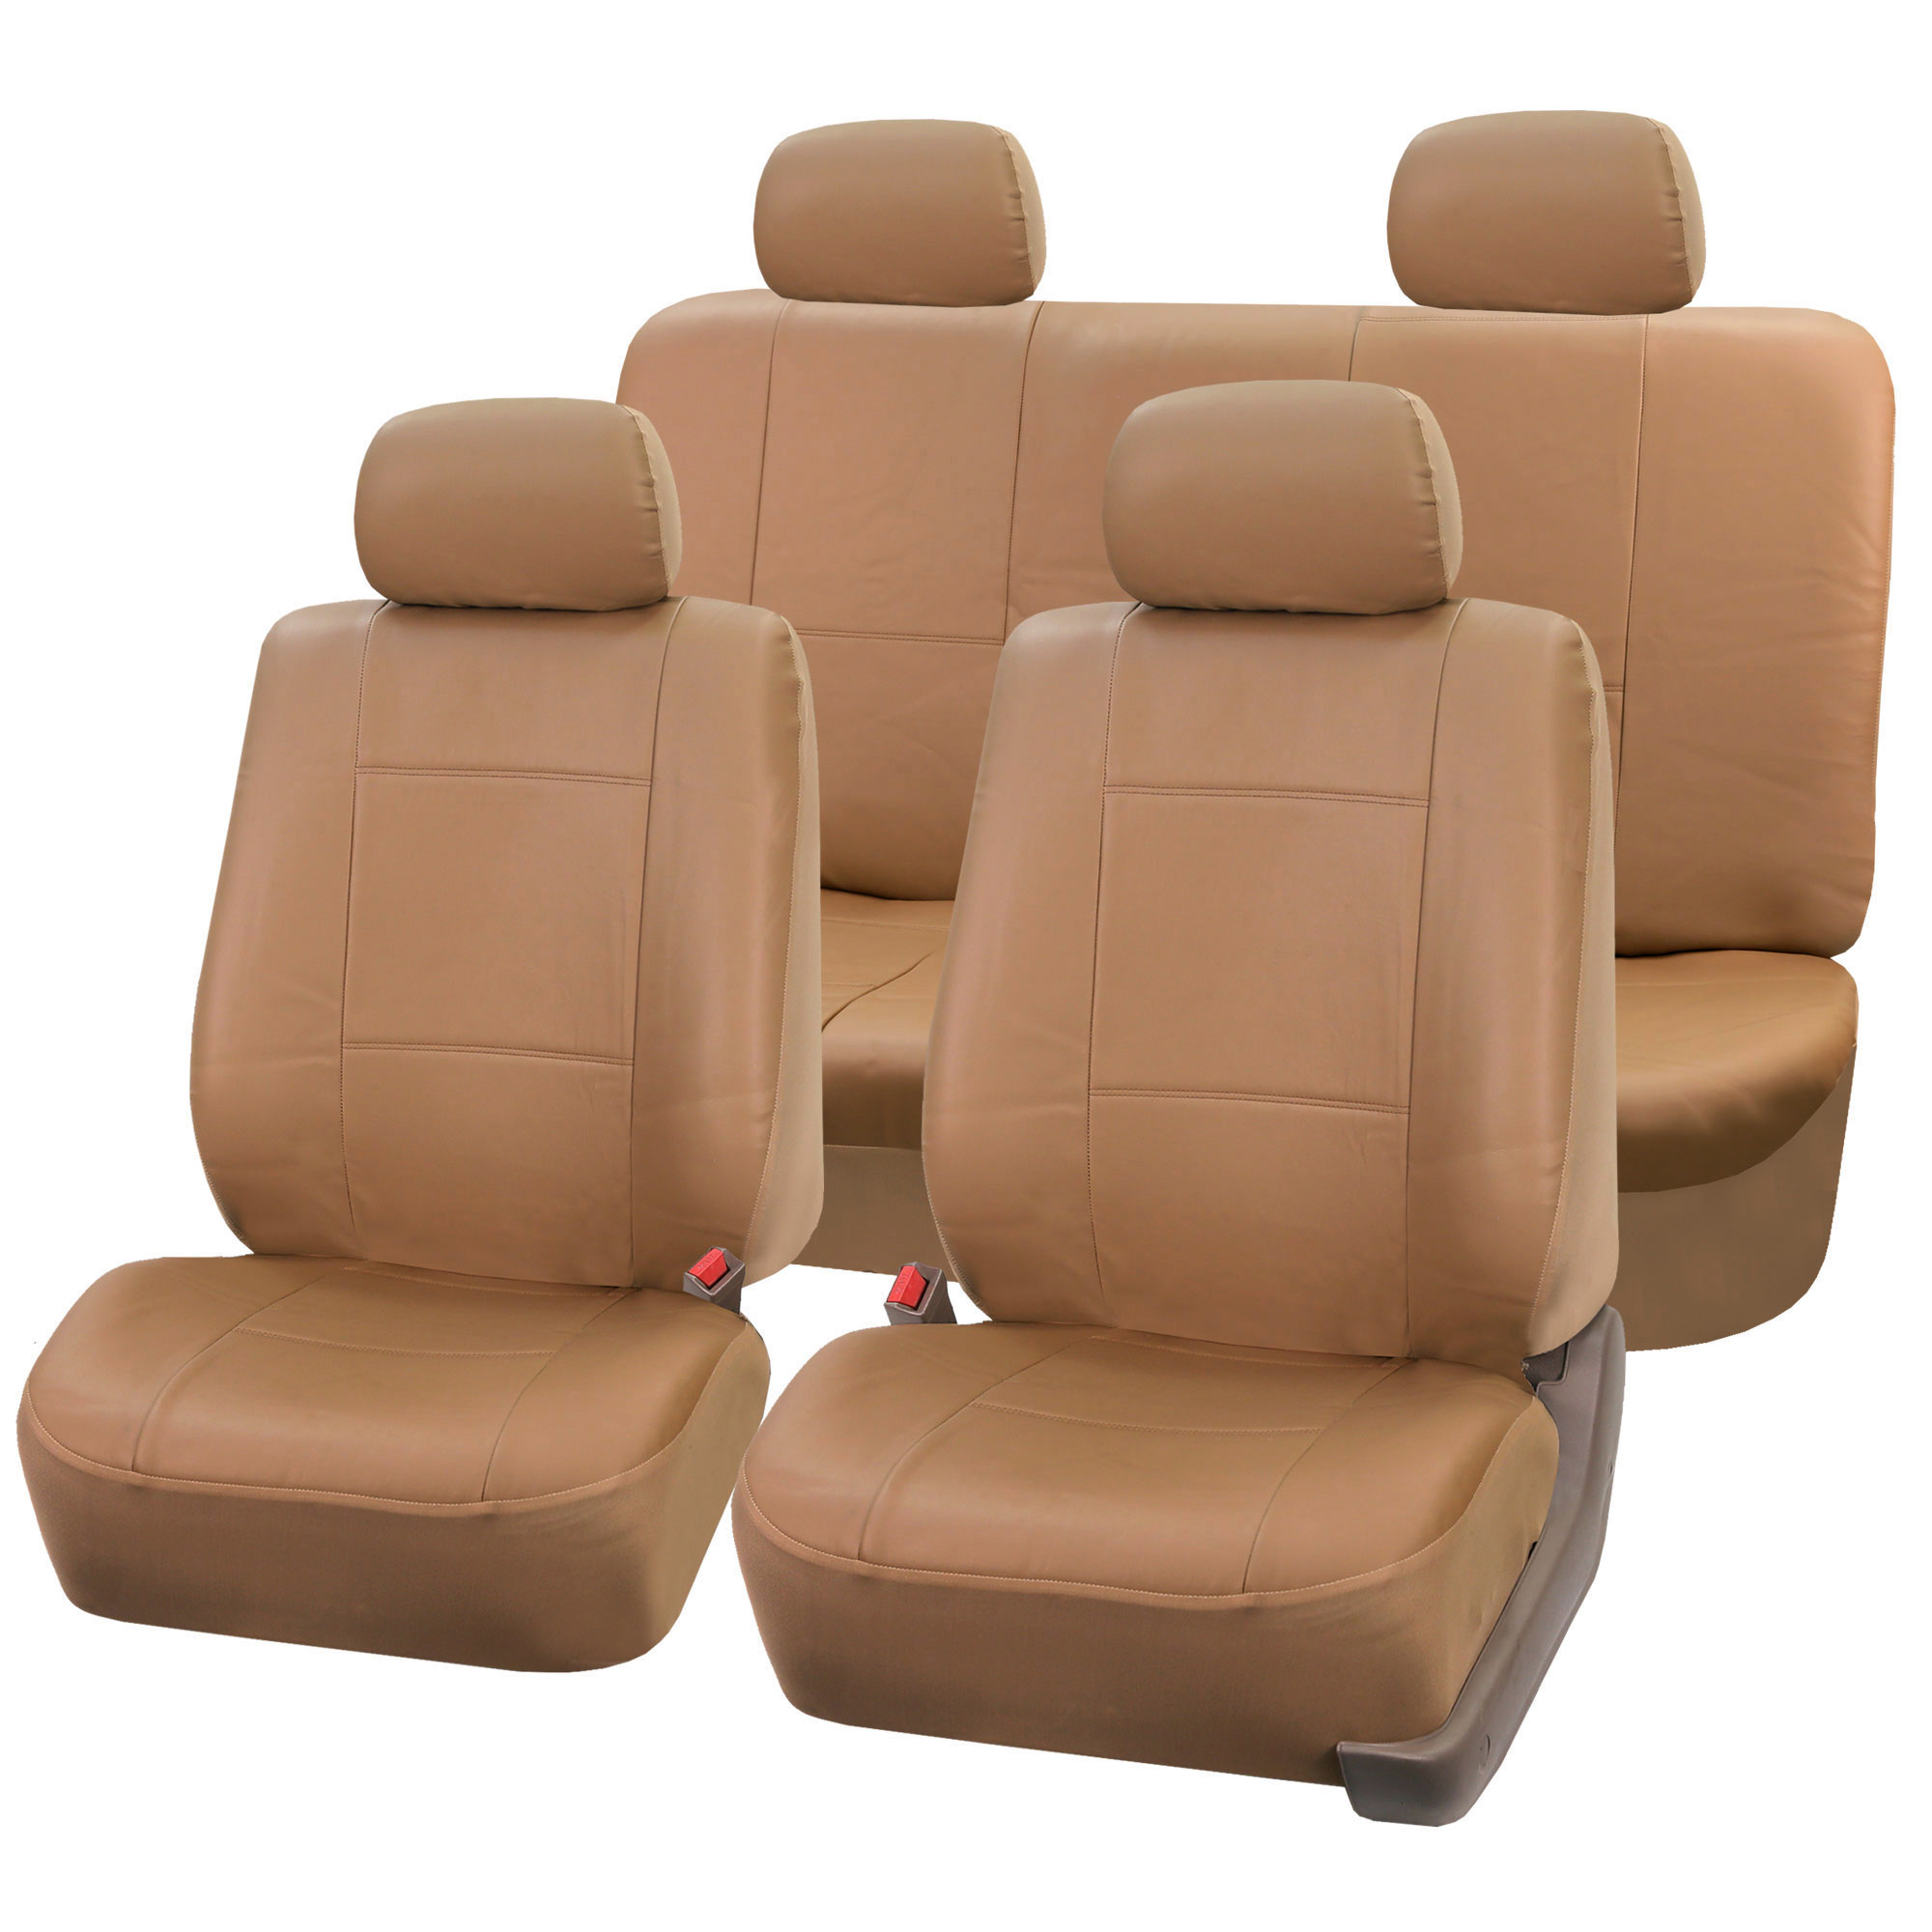 PU Leather Bucket Seat Covers For Seats With Detachable